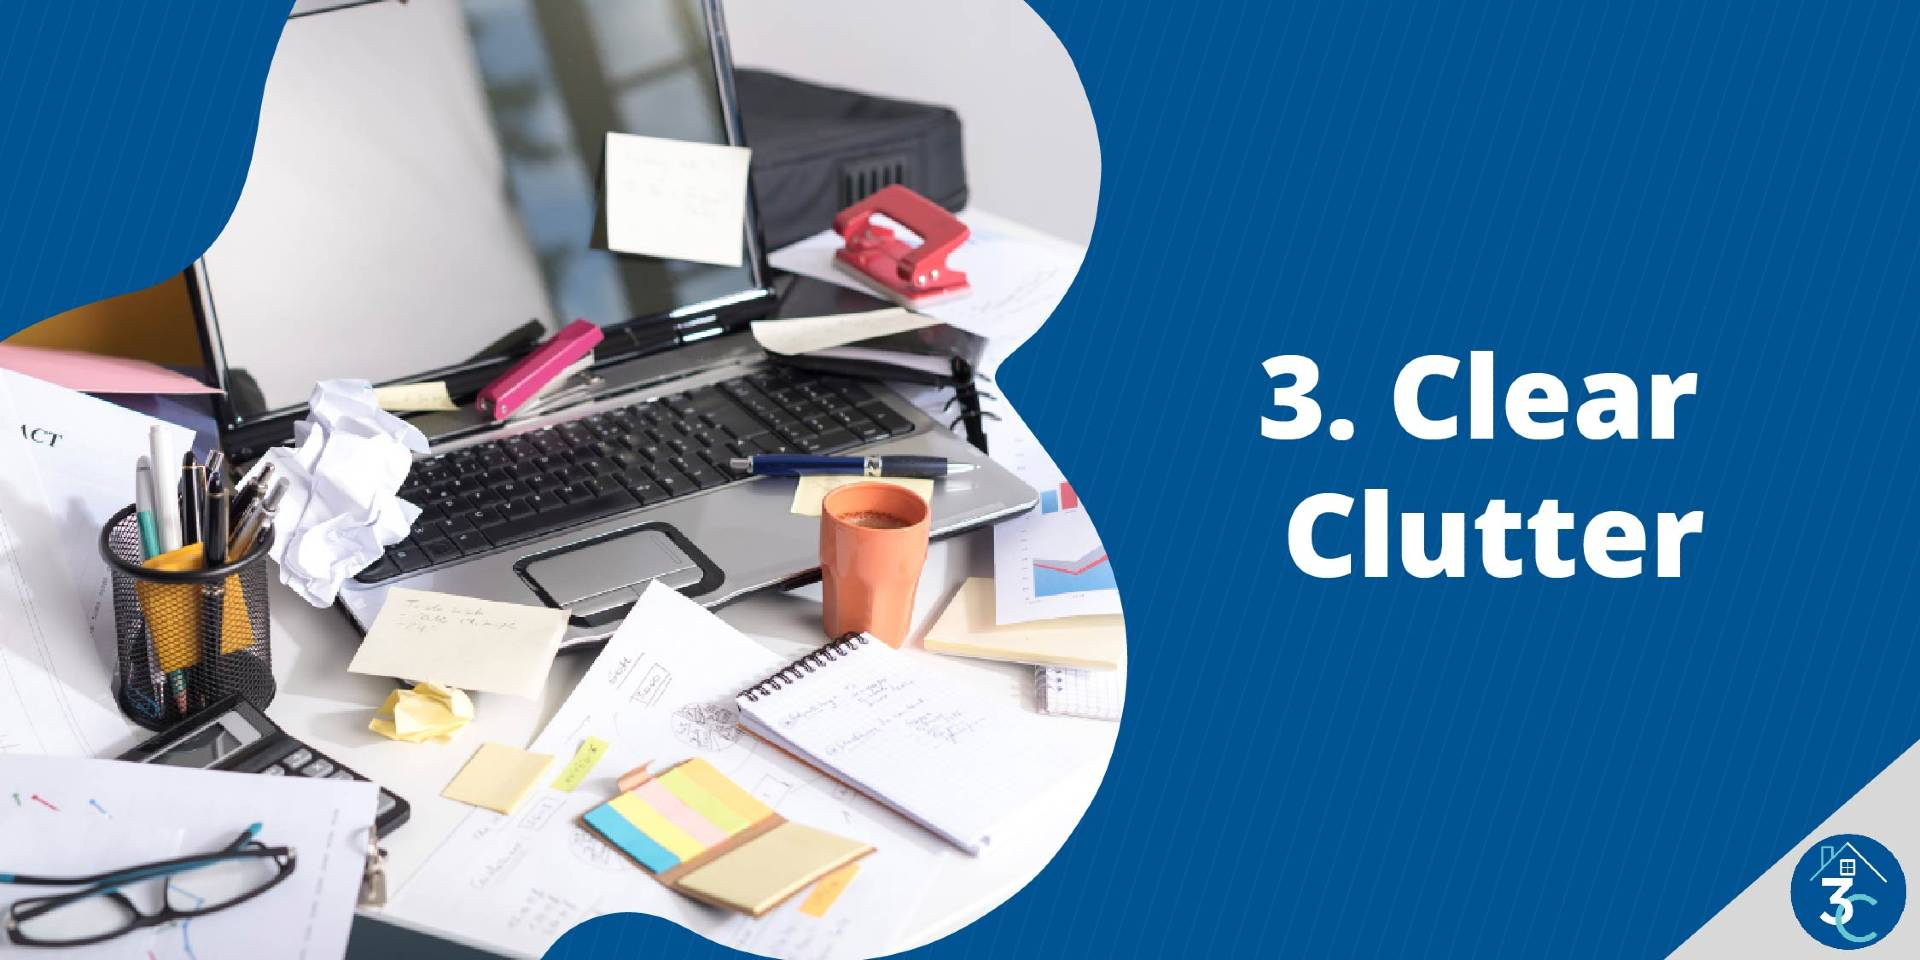 Clear Clutter